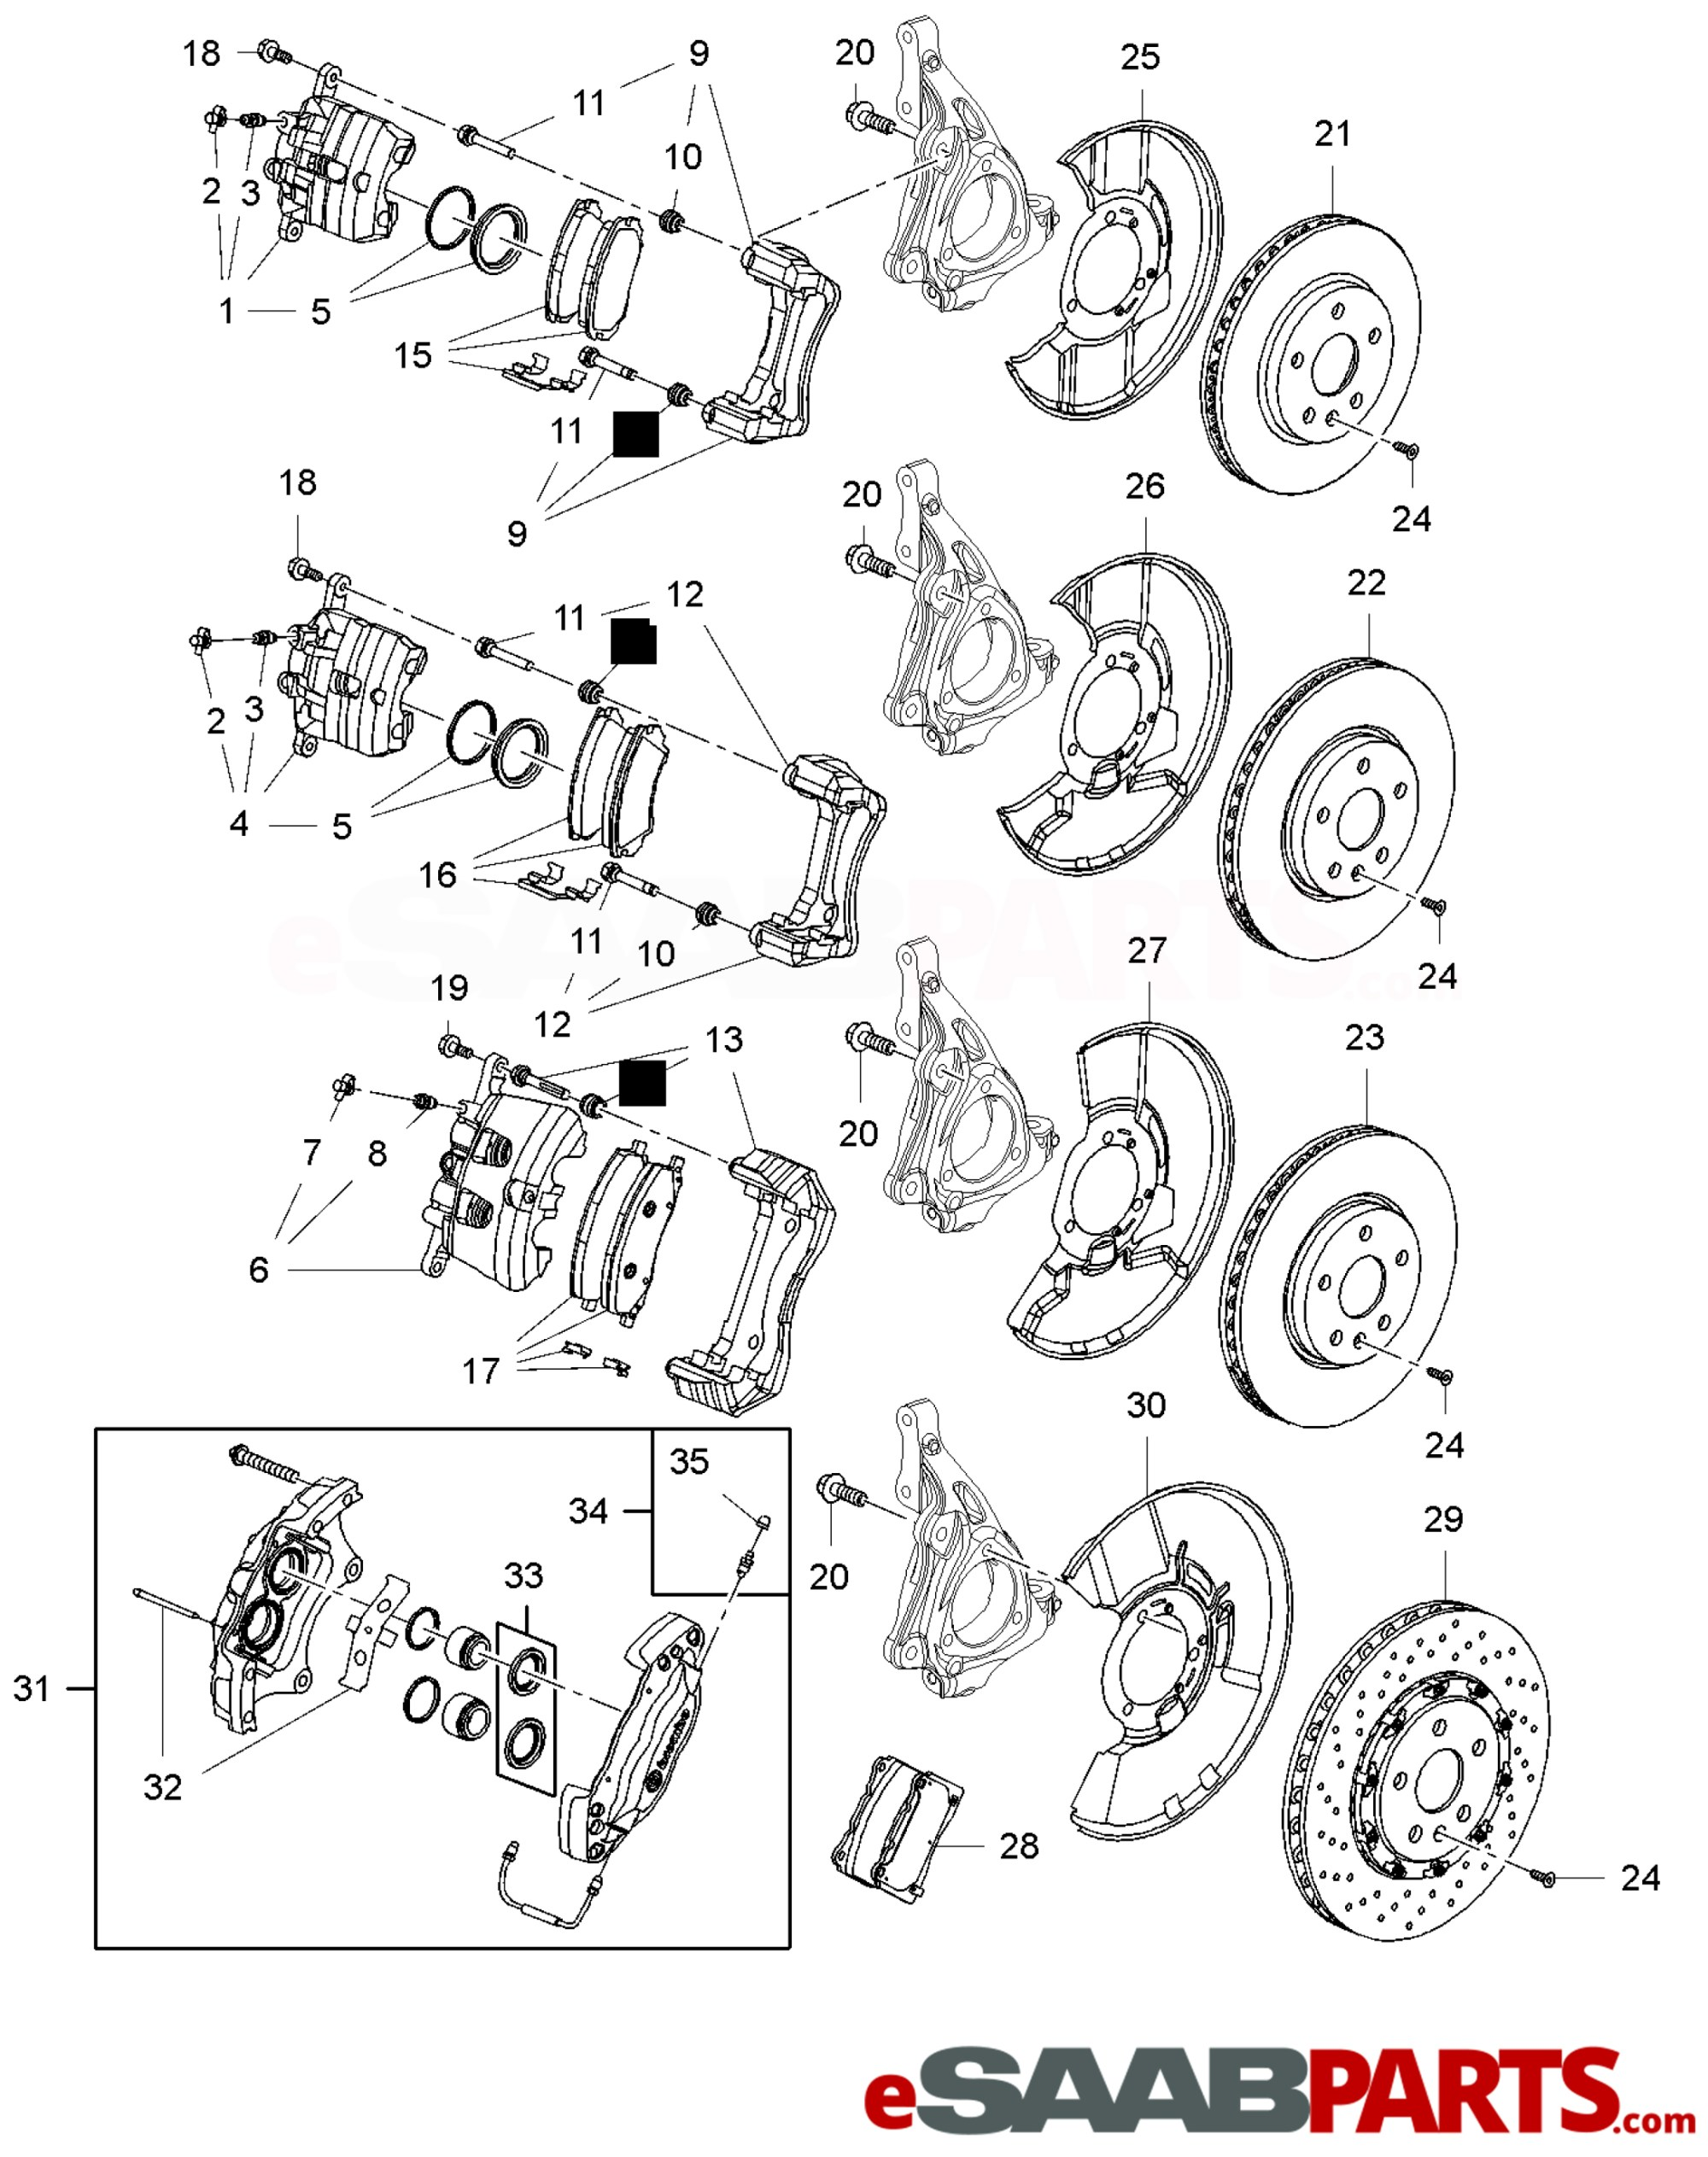 hight resolution of esaabparts com saab 9 5 650 brakes parts brake disc calipers pads front brake disc caliper and pads